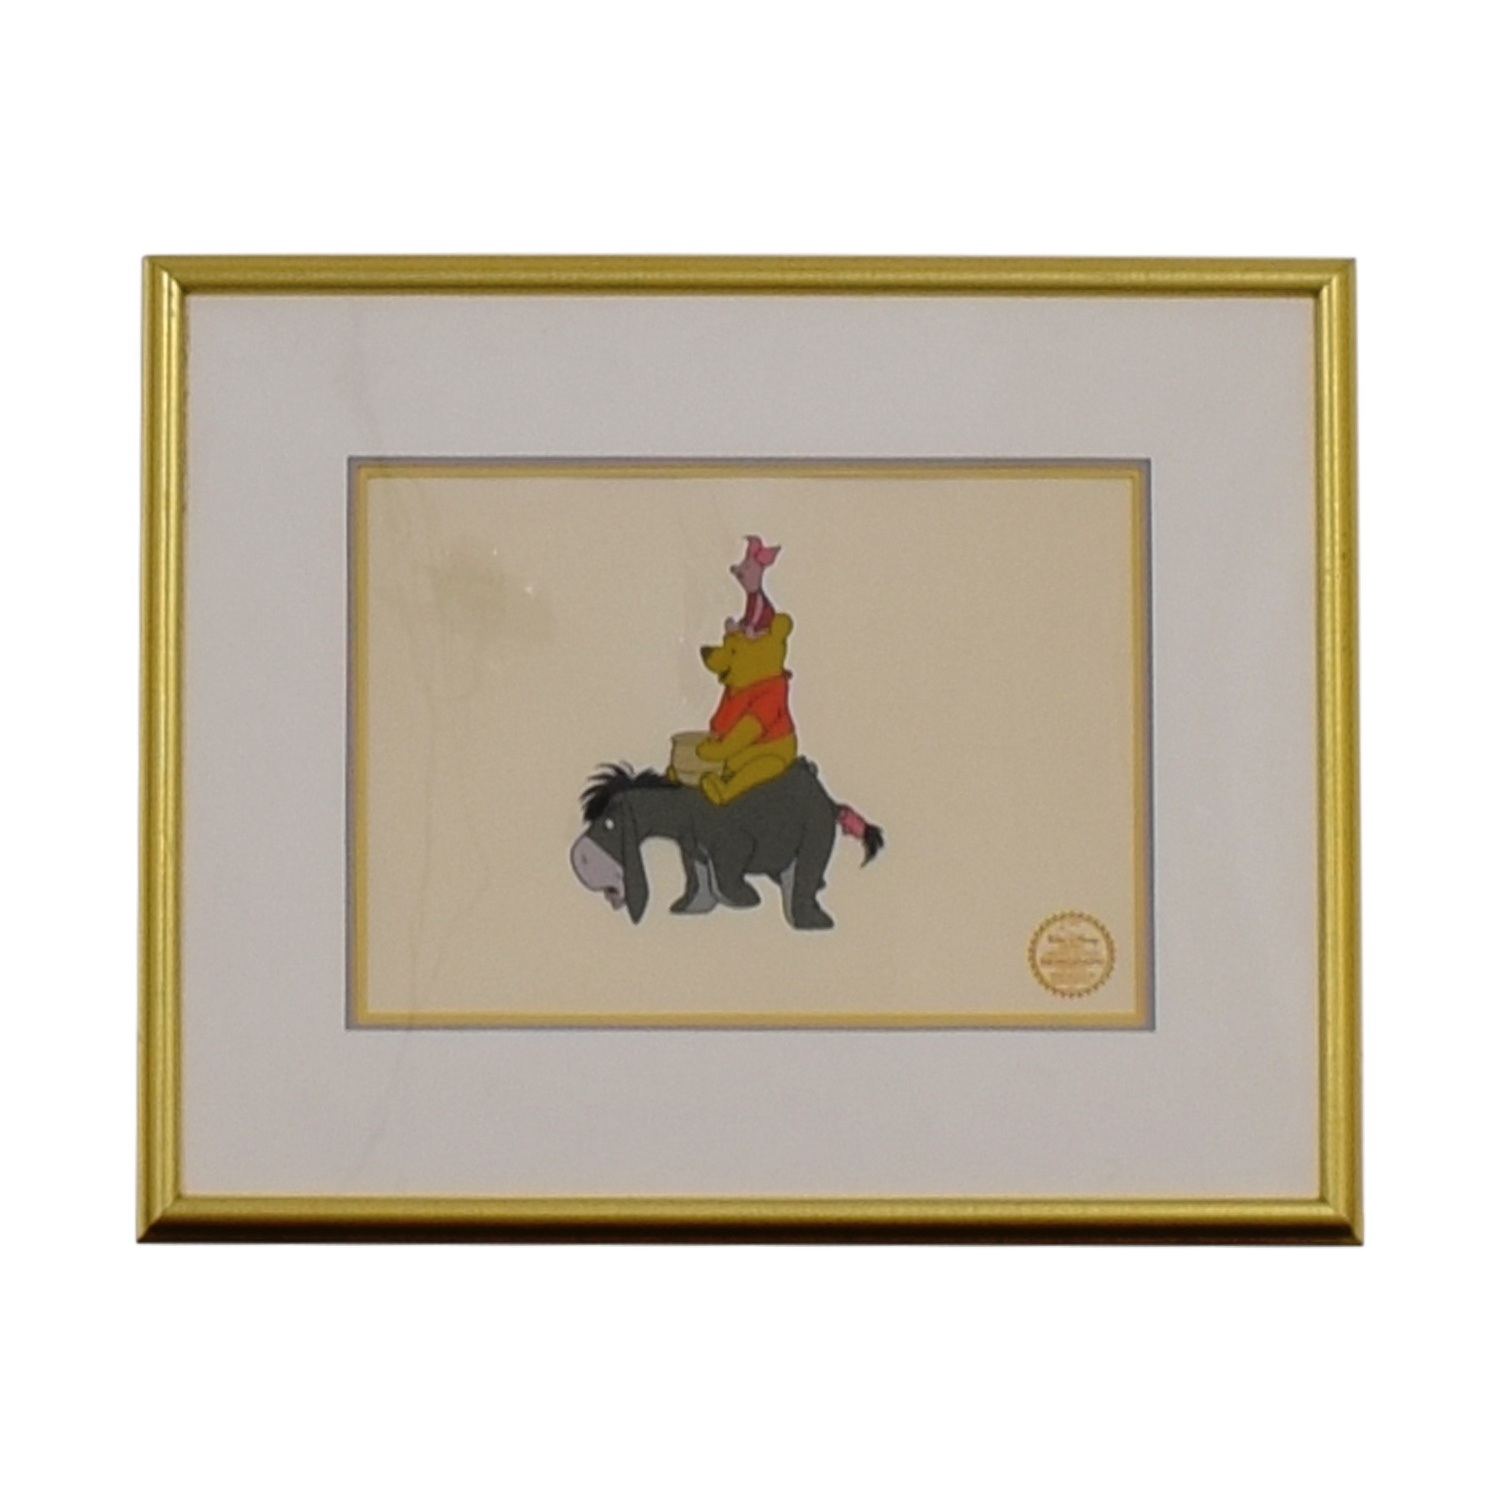 buy Disney Disney Winnie the Pooh Limited Edition Serigraph Framed online